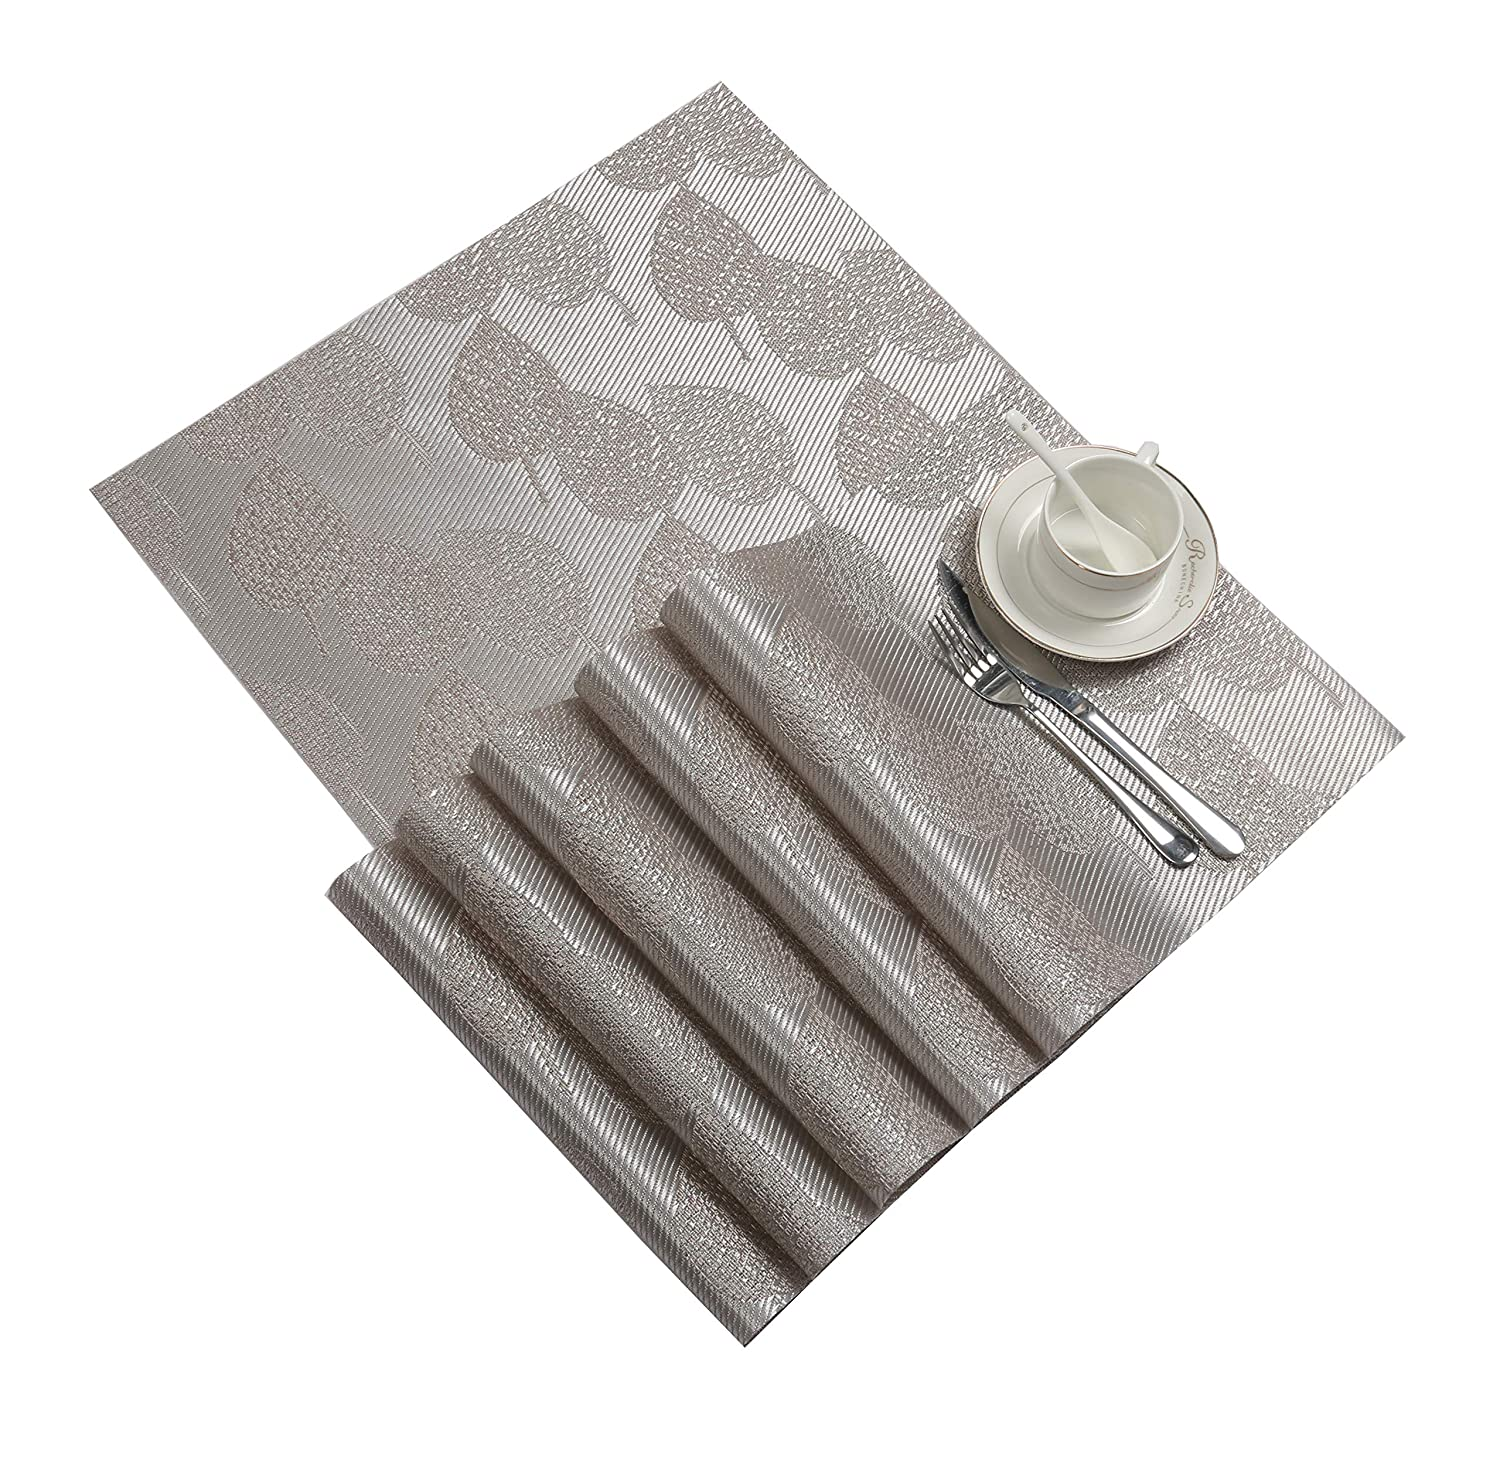 SHACOS Placemats for Dining Table Set of 6 Woven Vinyl Placemats Heat Resistant Kitchen Table Mats (6, Silver Leaf)